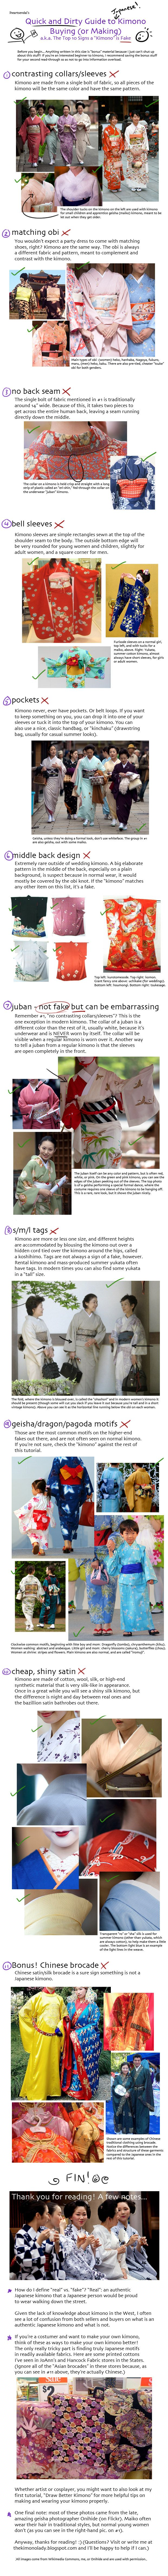 Tutorial: Real or Fake Kimono? by *iheartsendai on deviantART